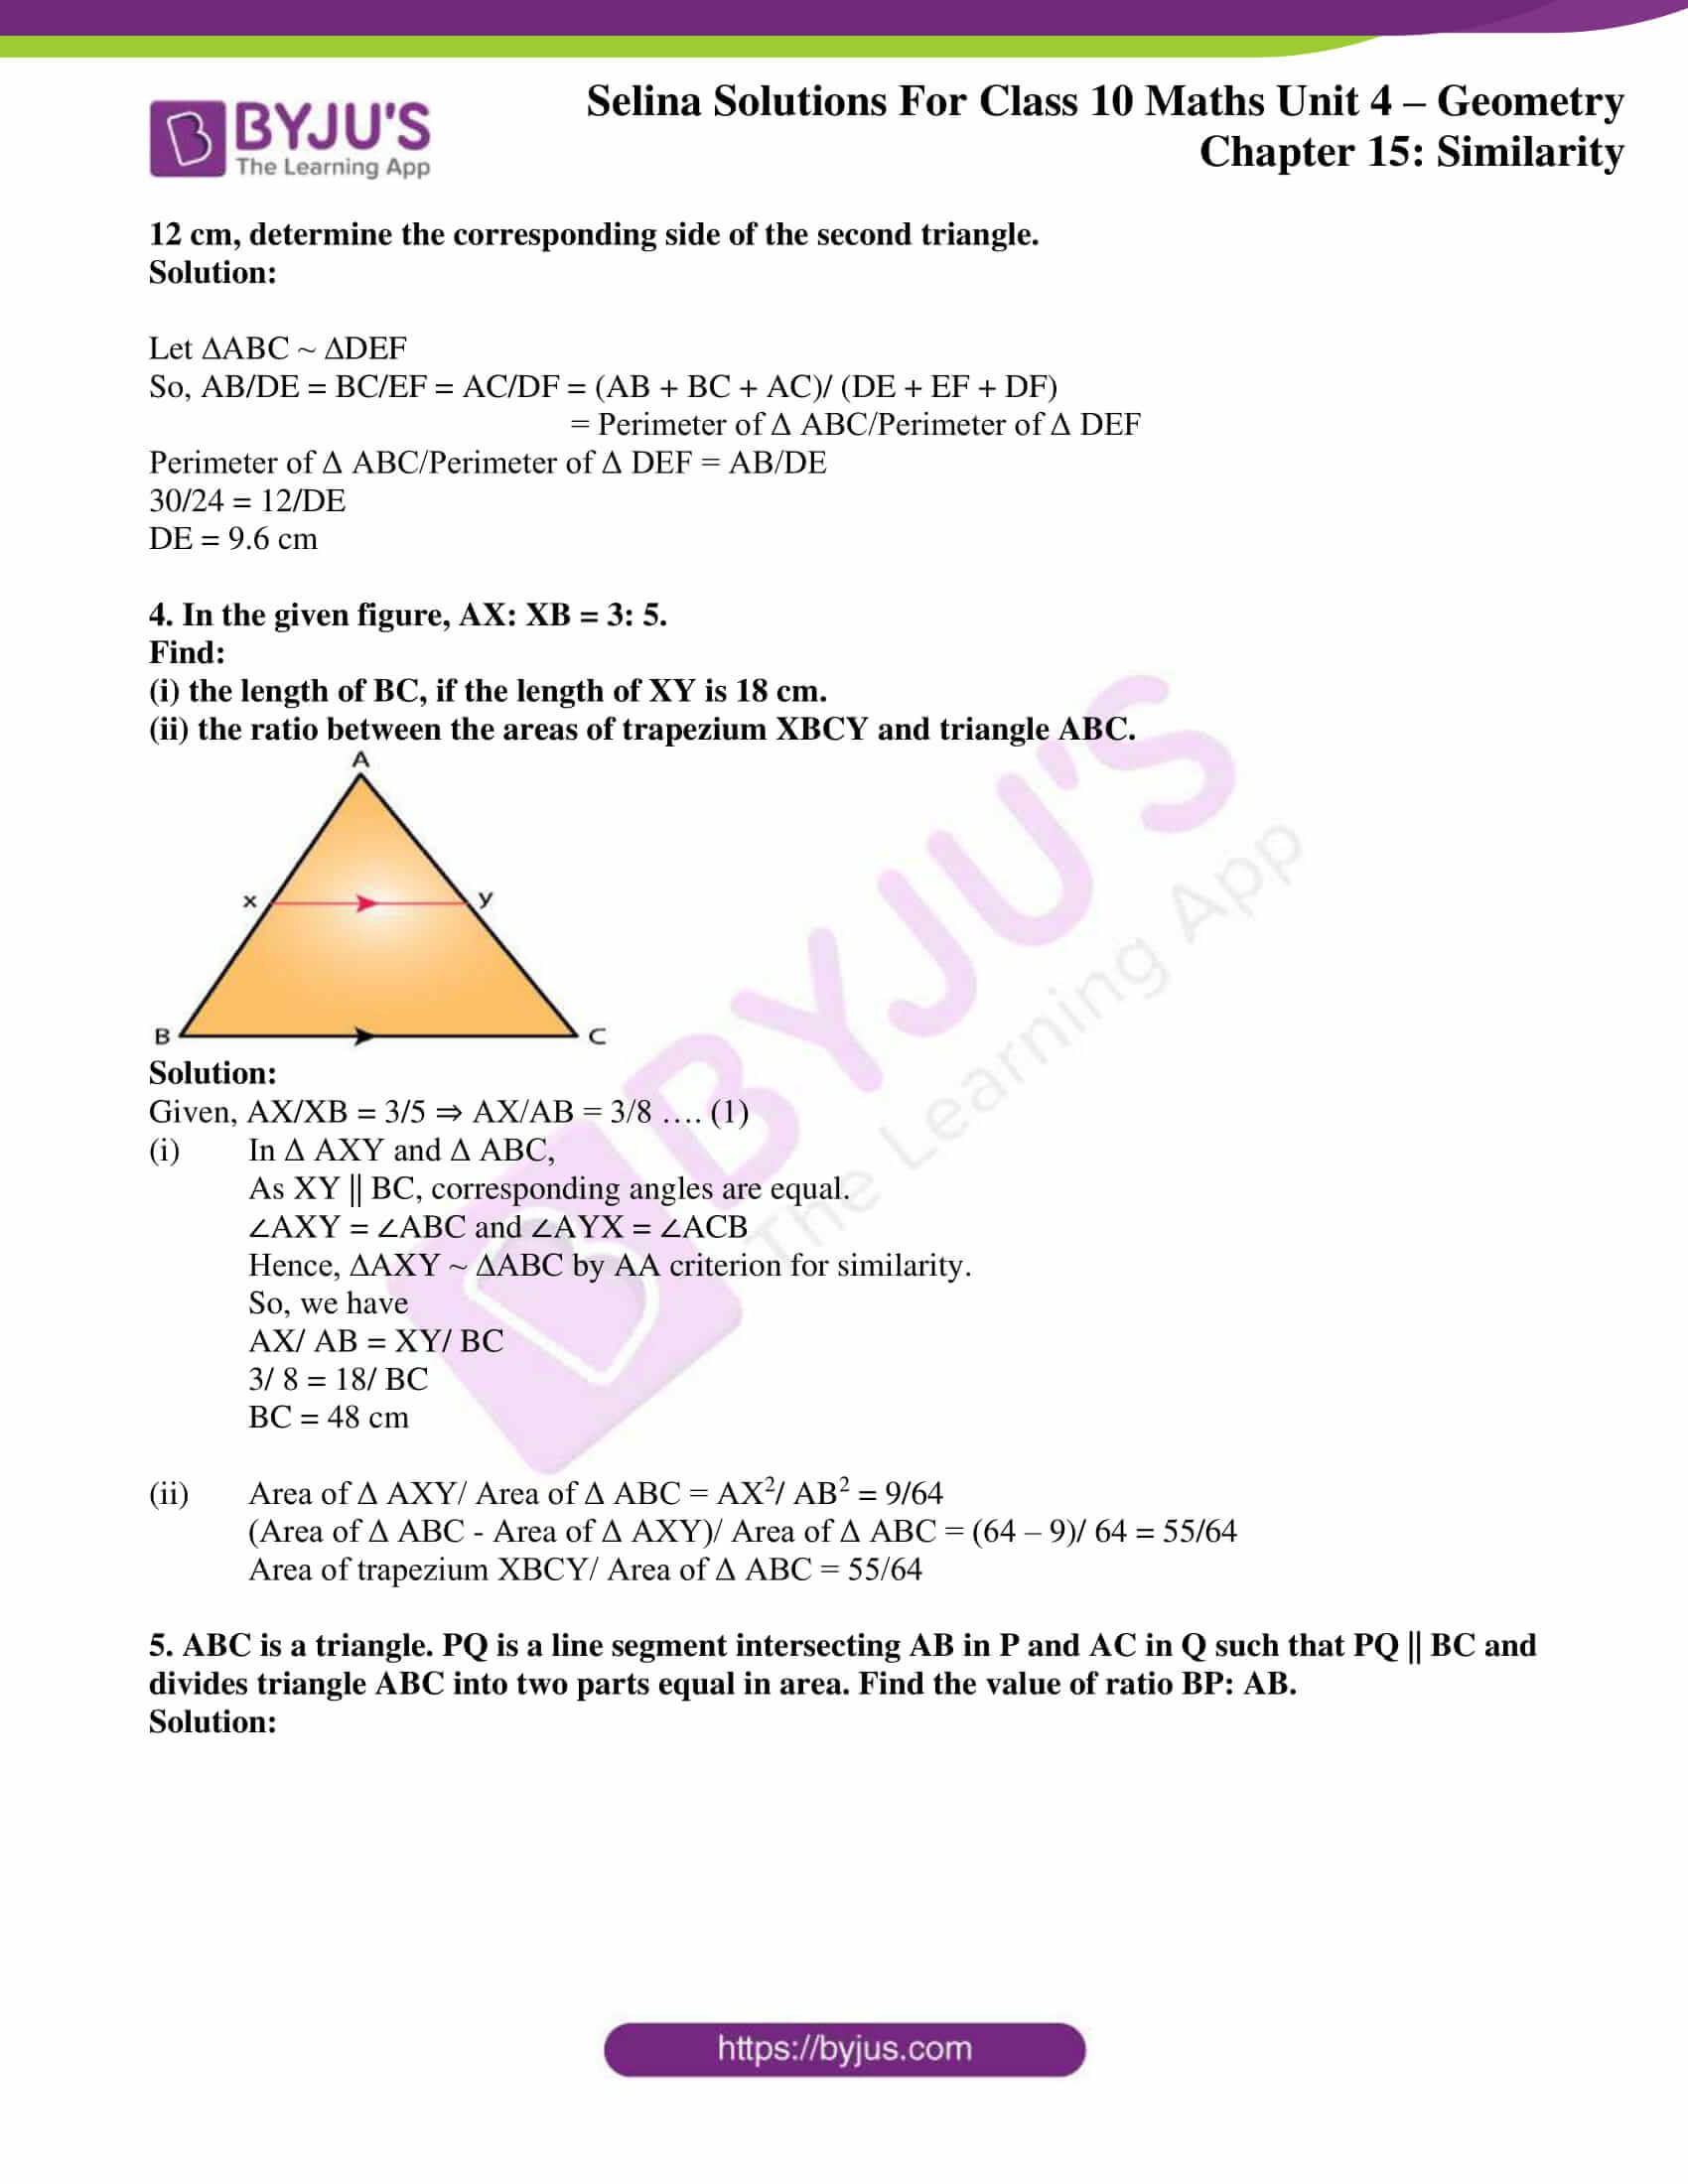 selina solution concise maths class 10 chapter 15 ex c 2